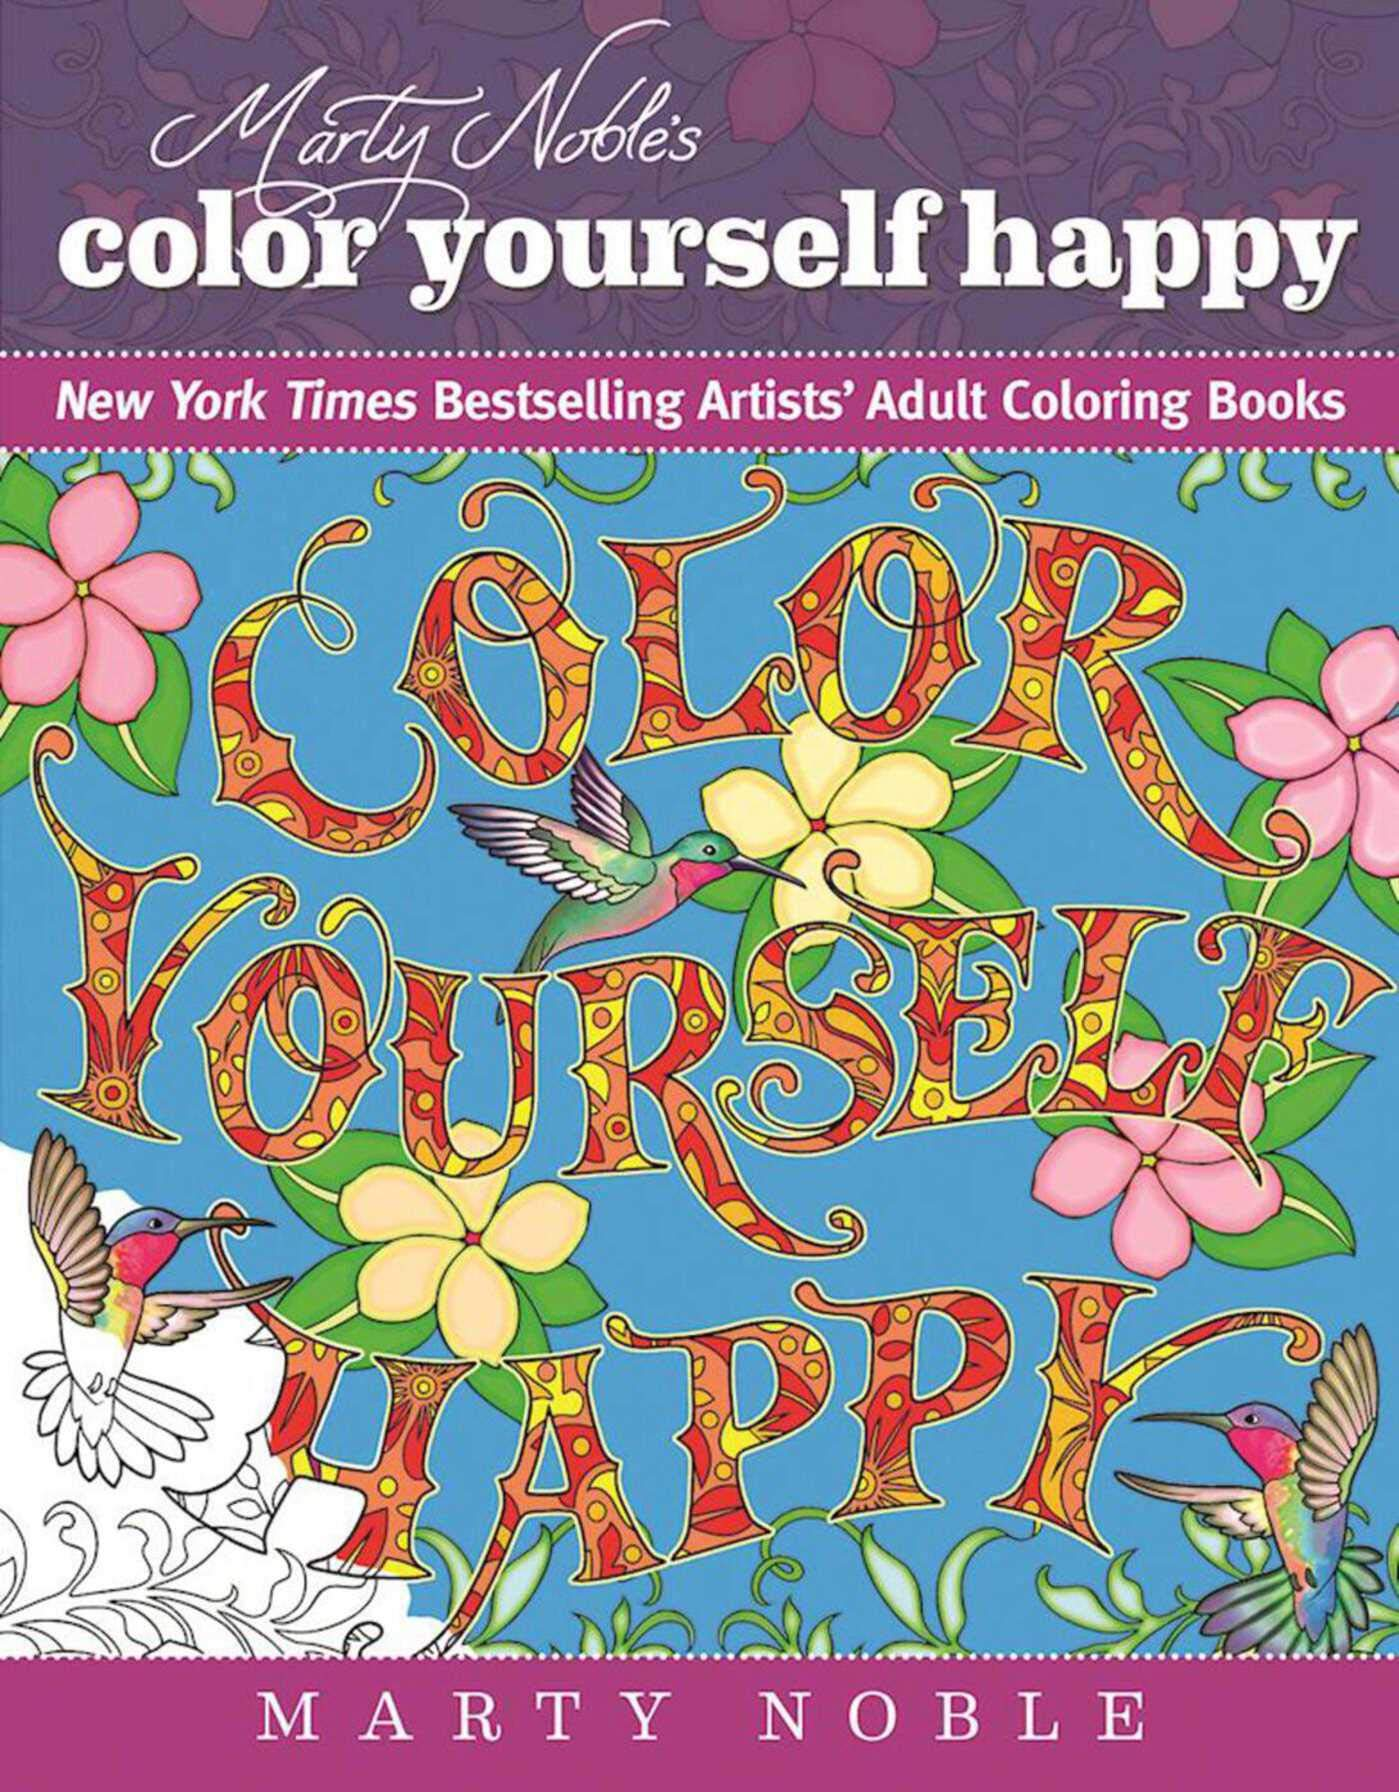 Marty Noble's Color Yourself Happy  New York Times Bestselling Artists' Adult Coloring Book  New York Times Bestselling Artists' Adult Coloring Books